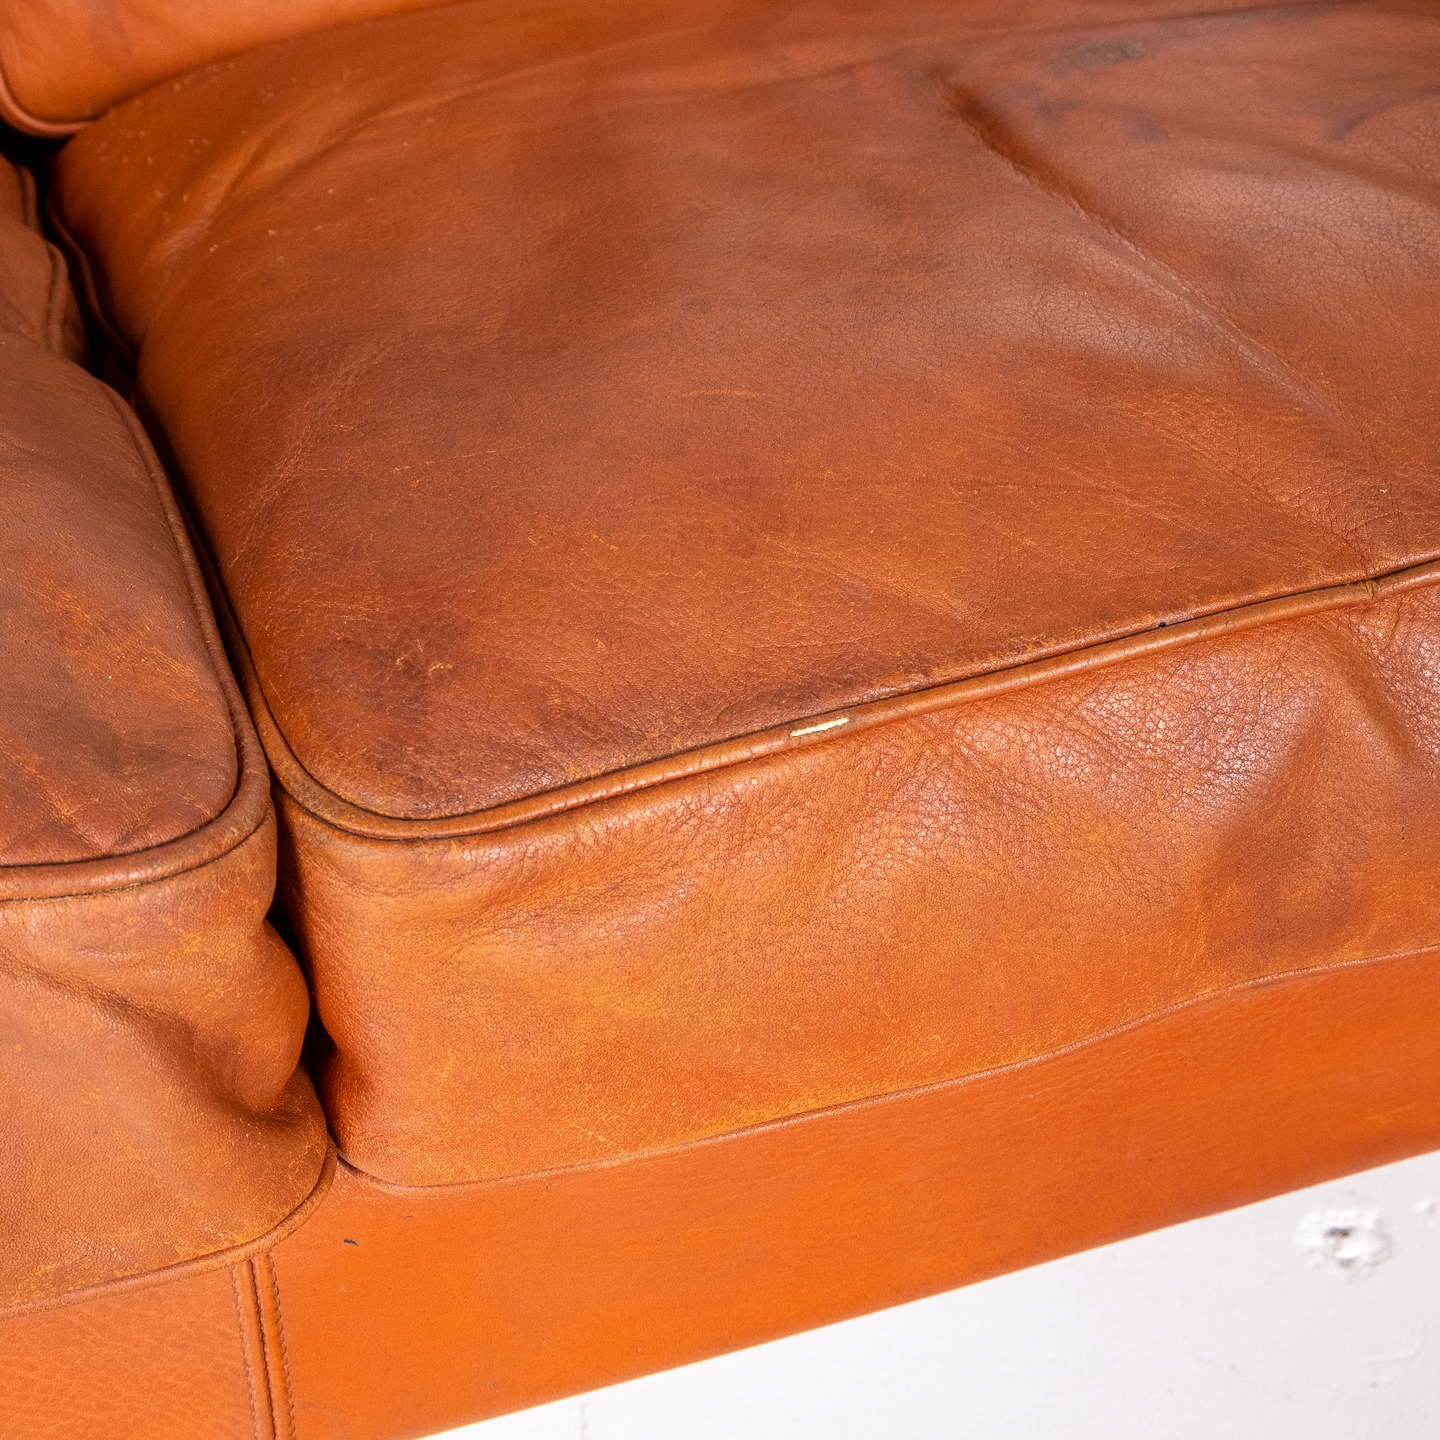 2 Seat Sofa In Tan Leather By Georg Thams, 1960s, Denmark4